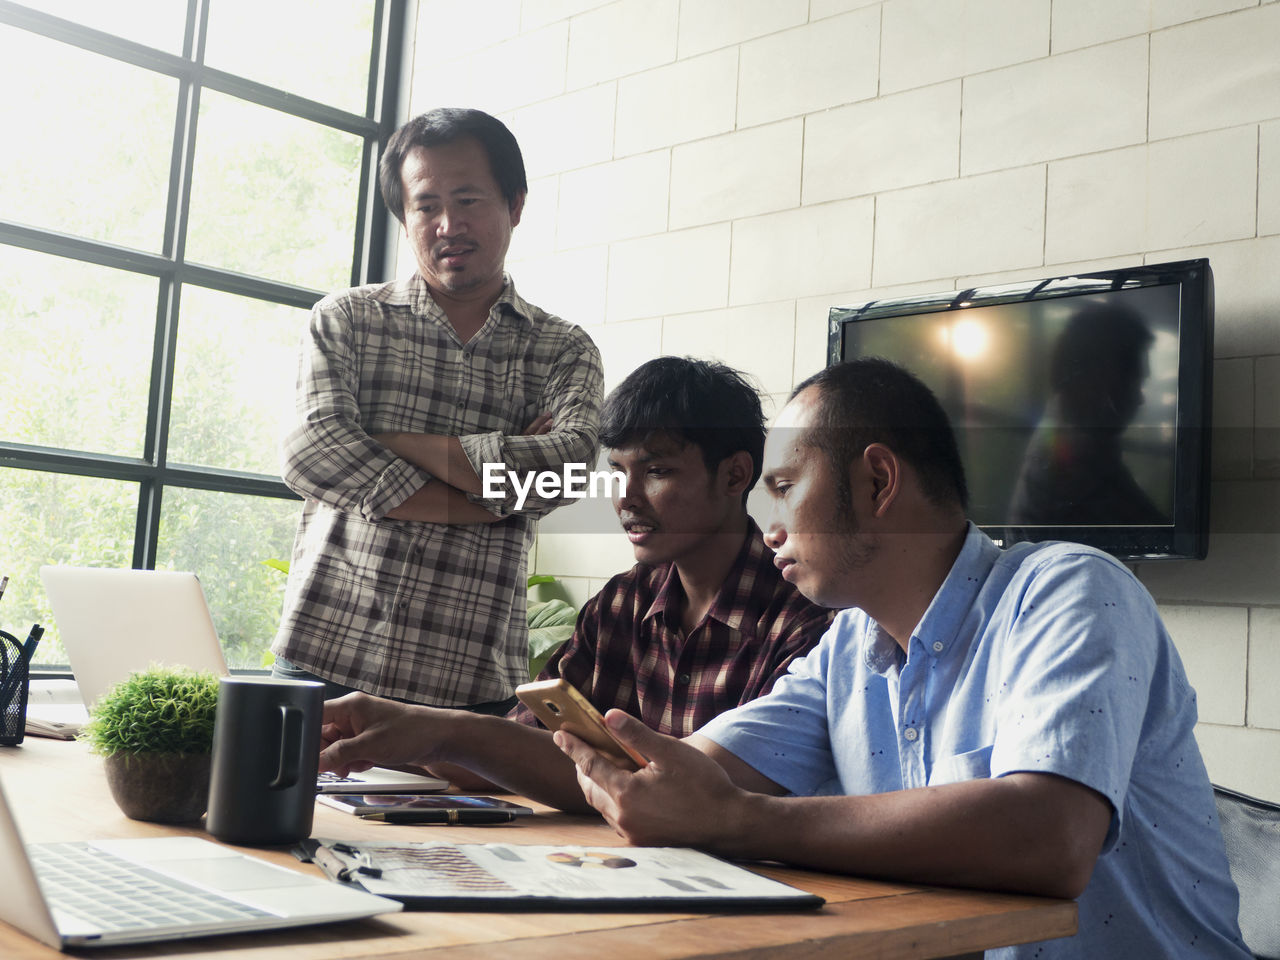 young men, table, real people, wireless technology, technology, males, men, waist up, casual clothing, indoors, computer, young adult, connection, people, communication, laptop, group of people, cooperation, adult, sitting, using laptop, coworker